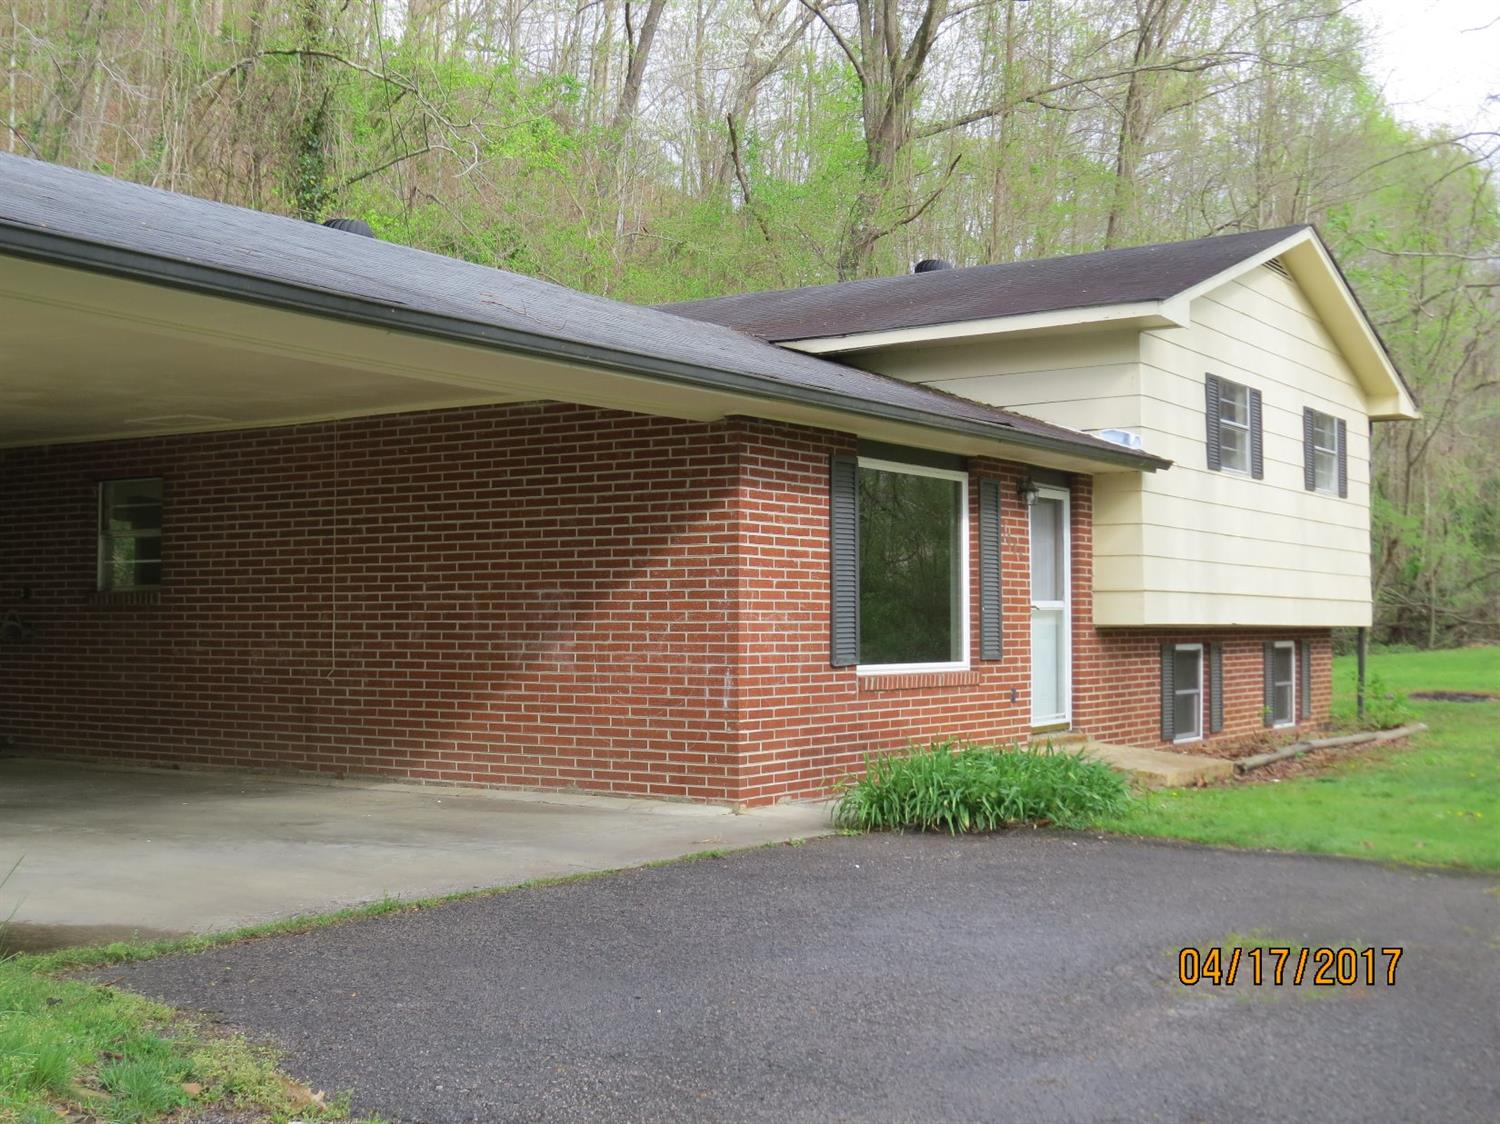 1084 IVY HILL, HARLAN, KY 40831